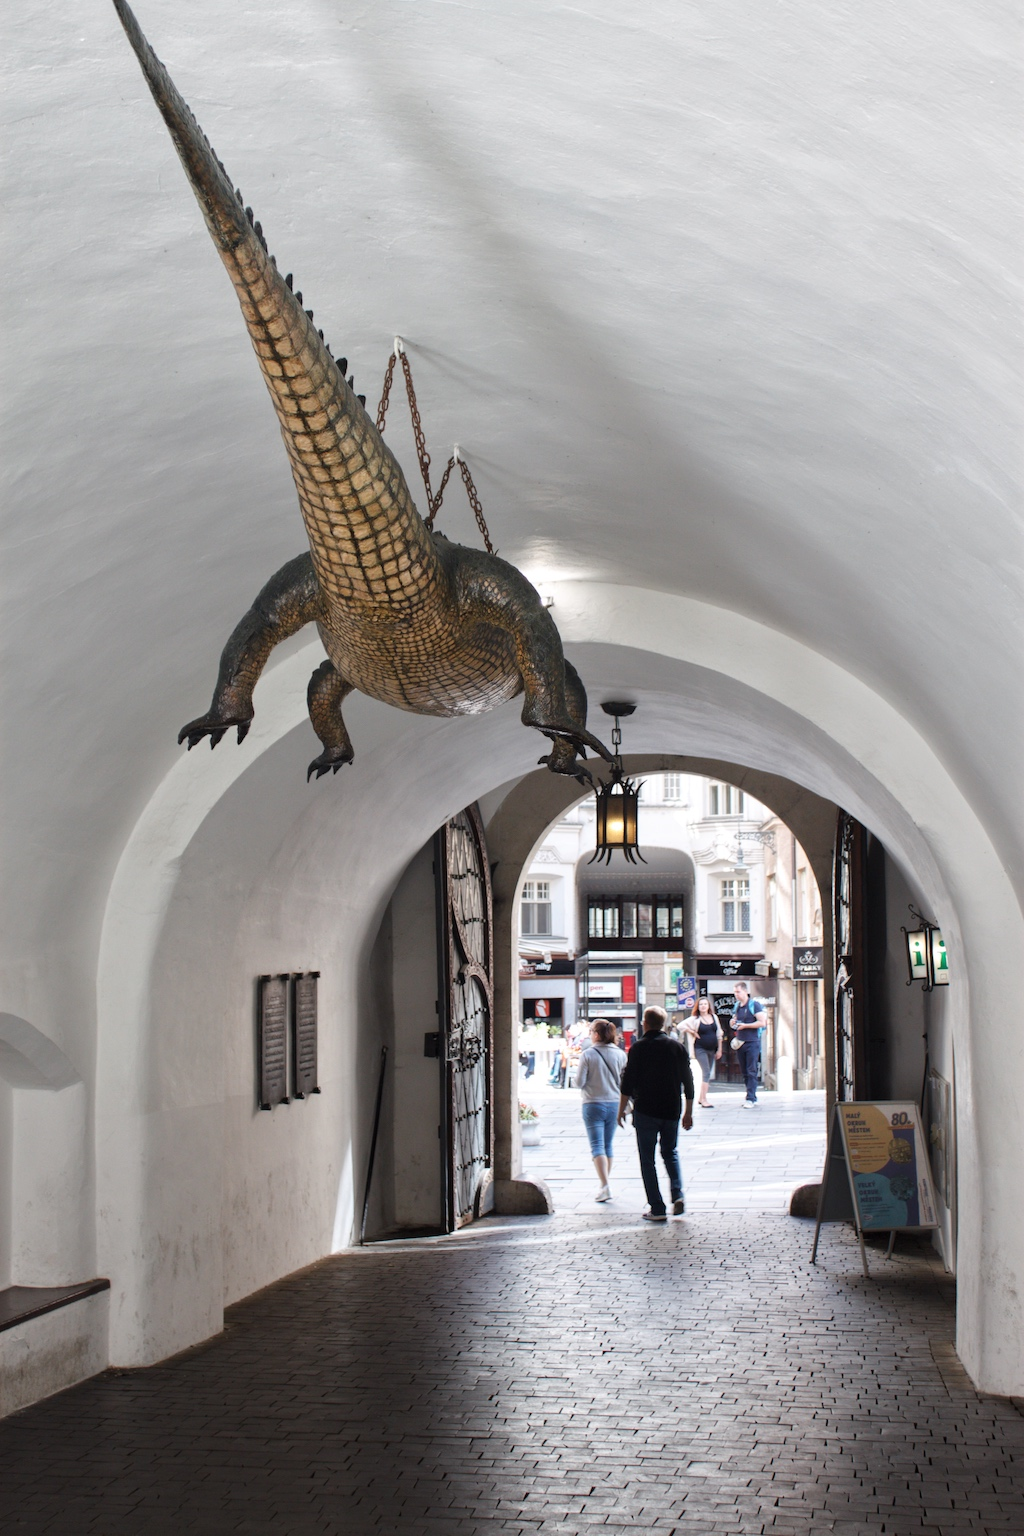 Brno Dragon - Looking To Street